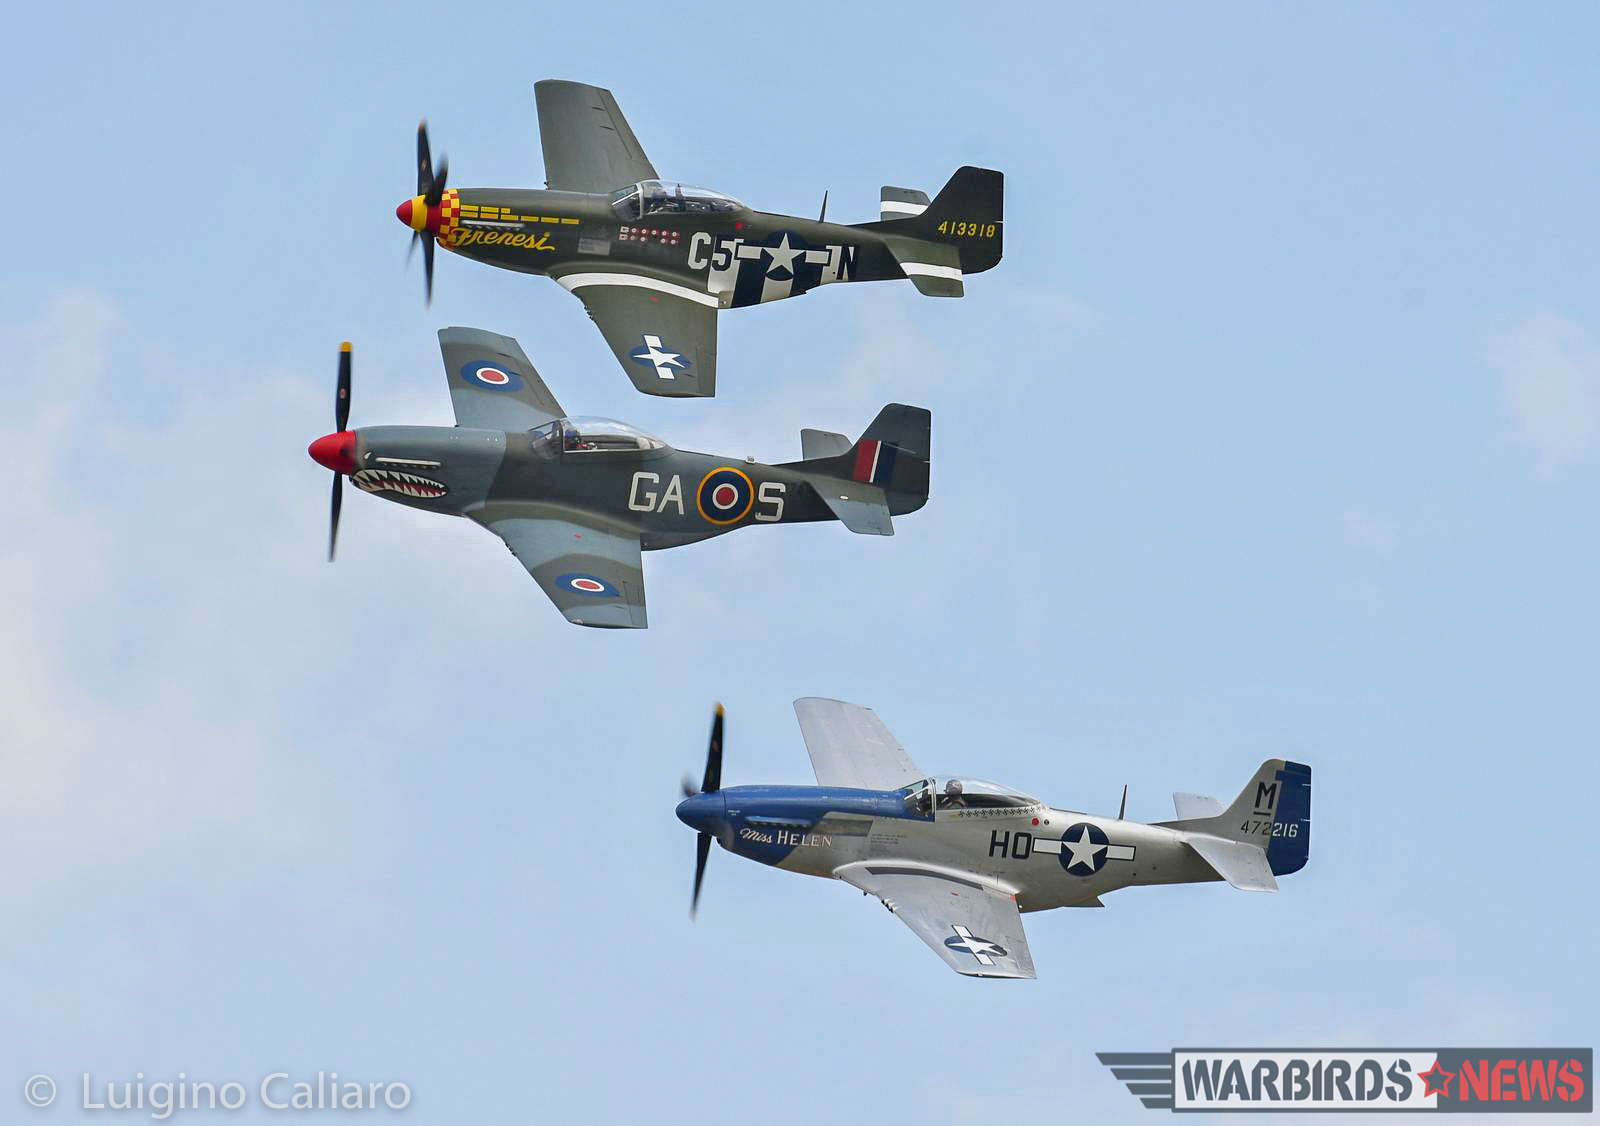 Some of the Mustangs in formation. (photo by Luigino Caliaro)